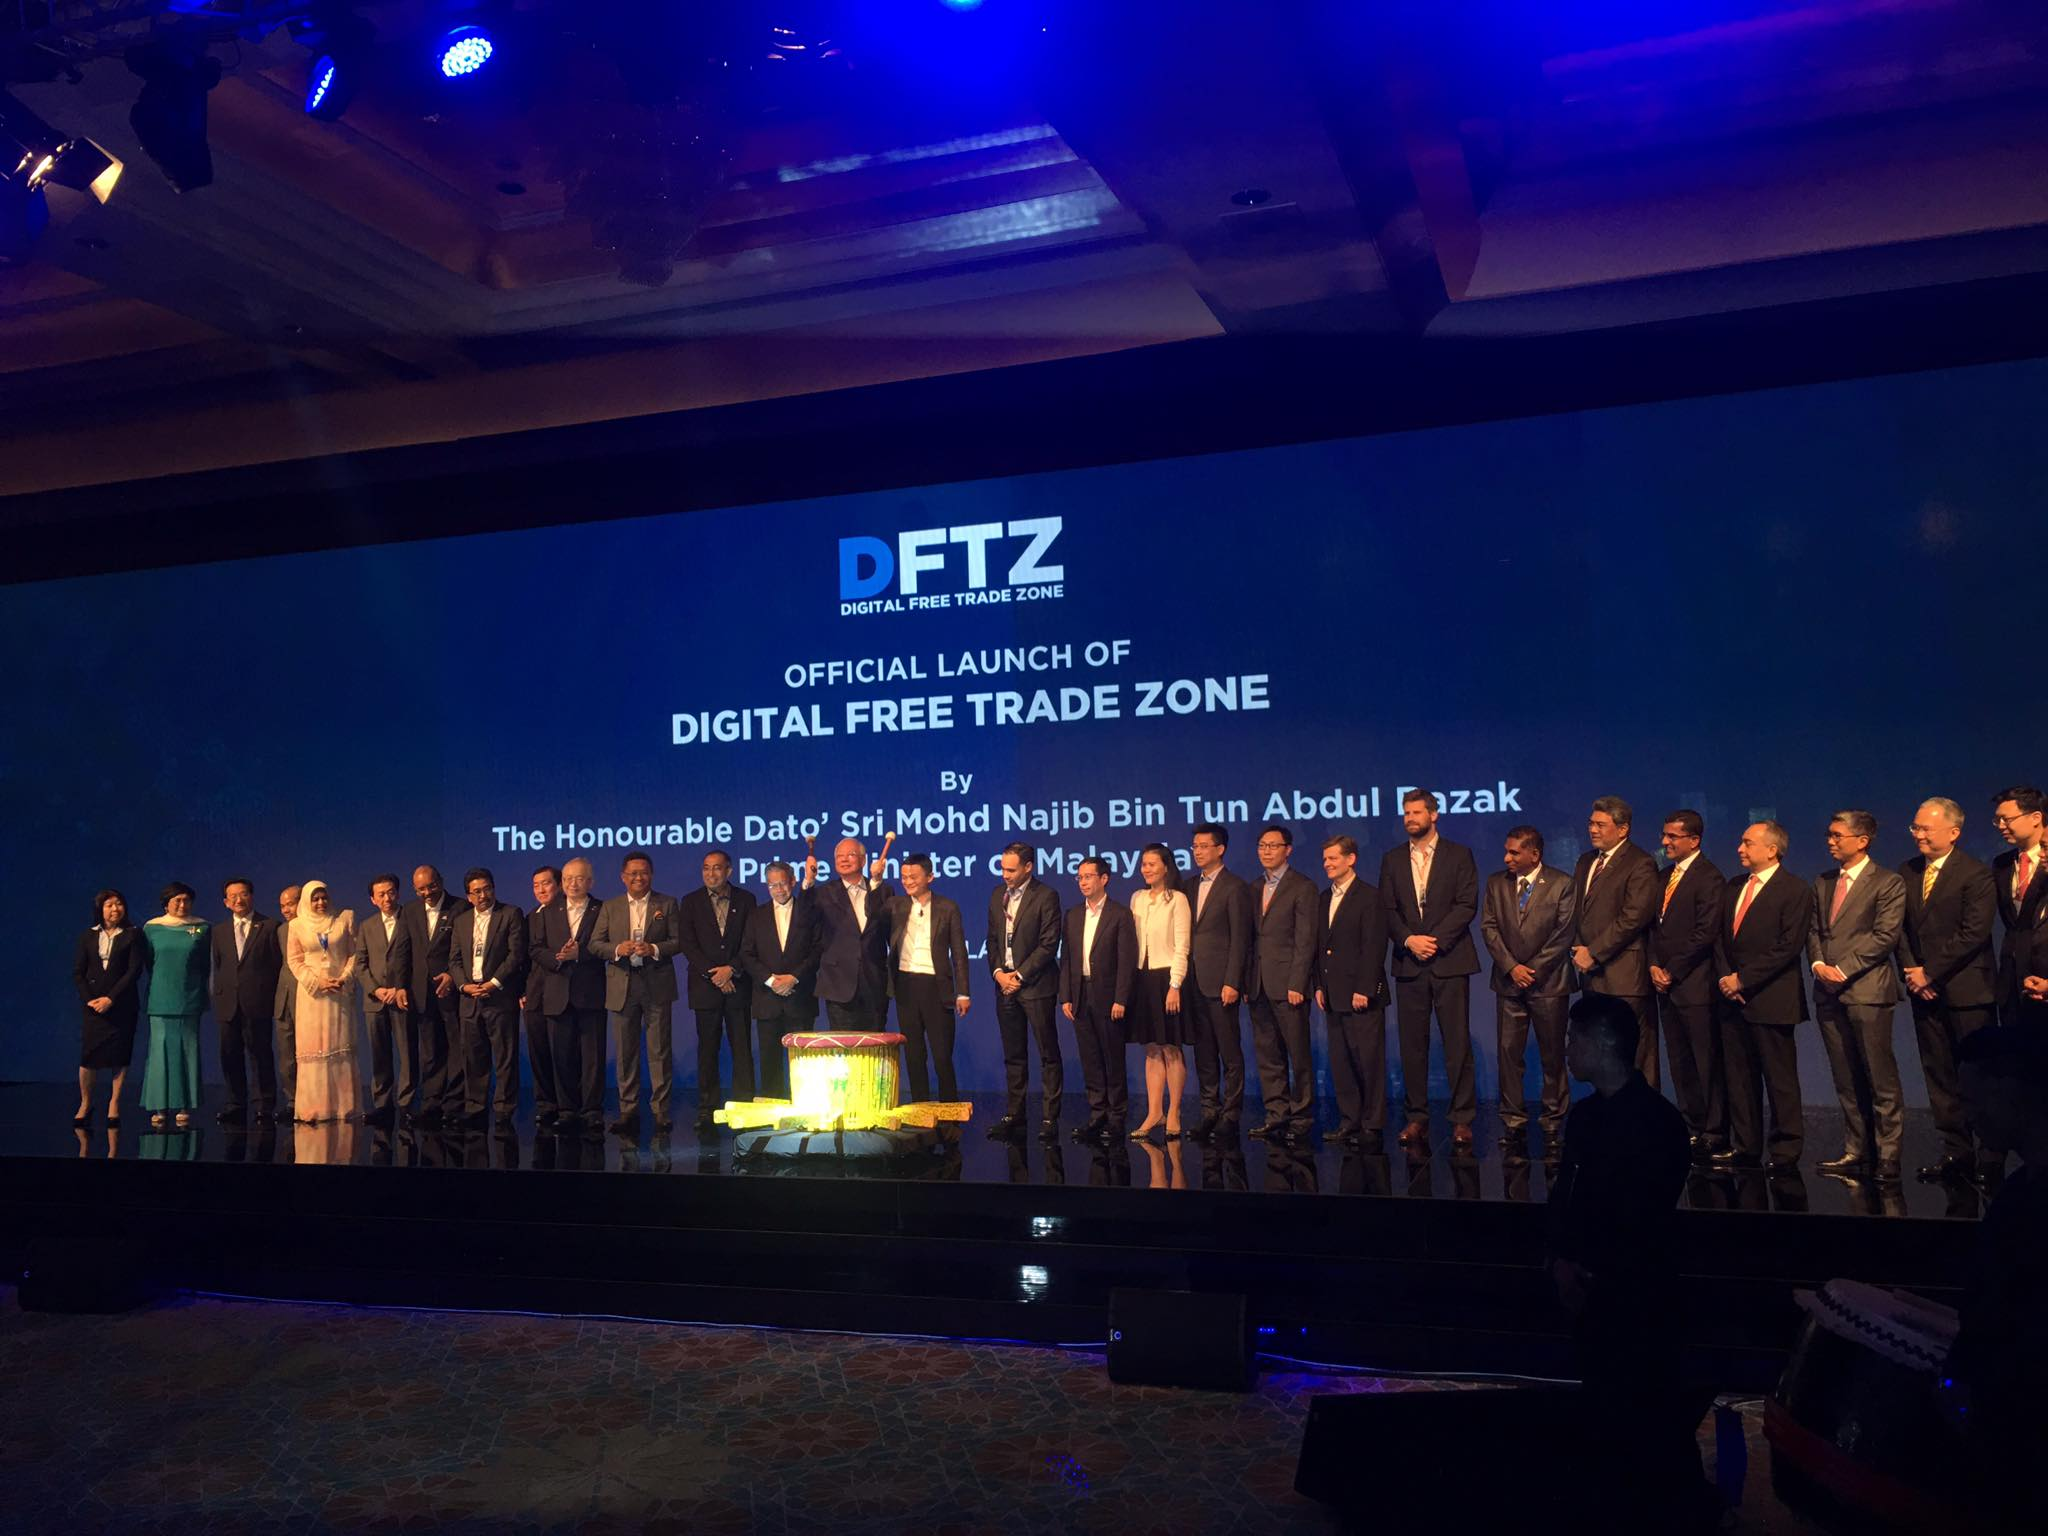 Malaysia launches worlds first digital free trade zone dftz hwh malaysia launches worlds first digital free trade zone dftz hwh international corp gumiabroncs Image collections